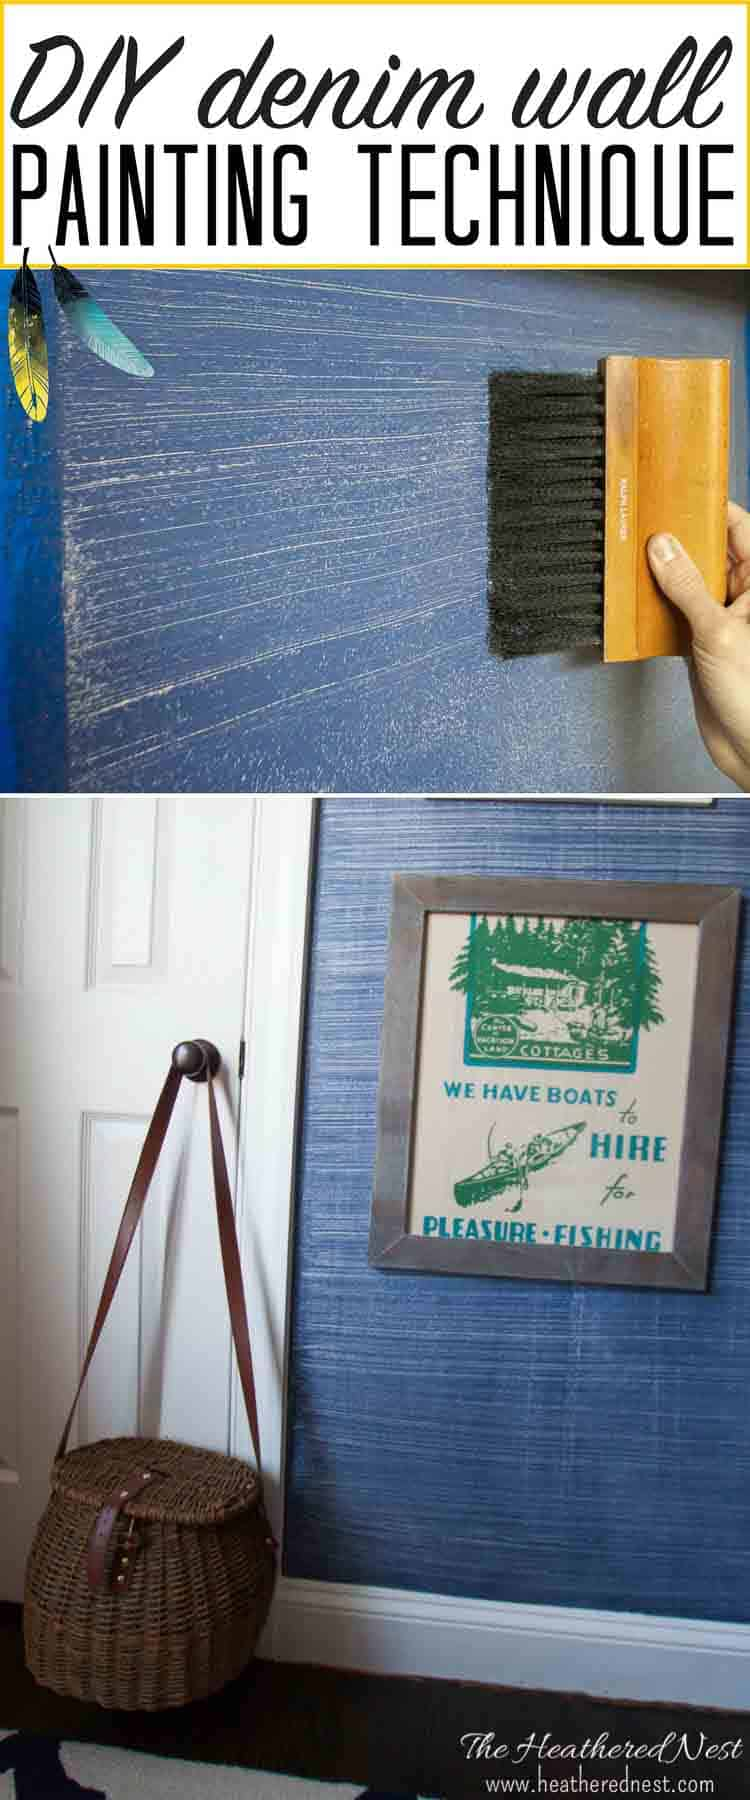 Denim faux finish for walls! GREAT paint idea to add texture and interest for an upscale look on a budget! Looks like grasscloth or real denim jeans!! #denimpaint #fauxfinish #denimpaintingdiy #denimpainttechnique